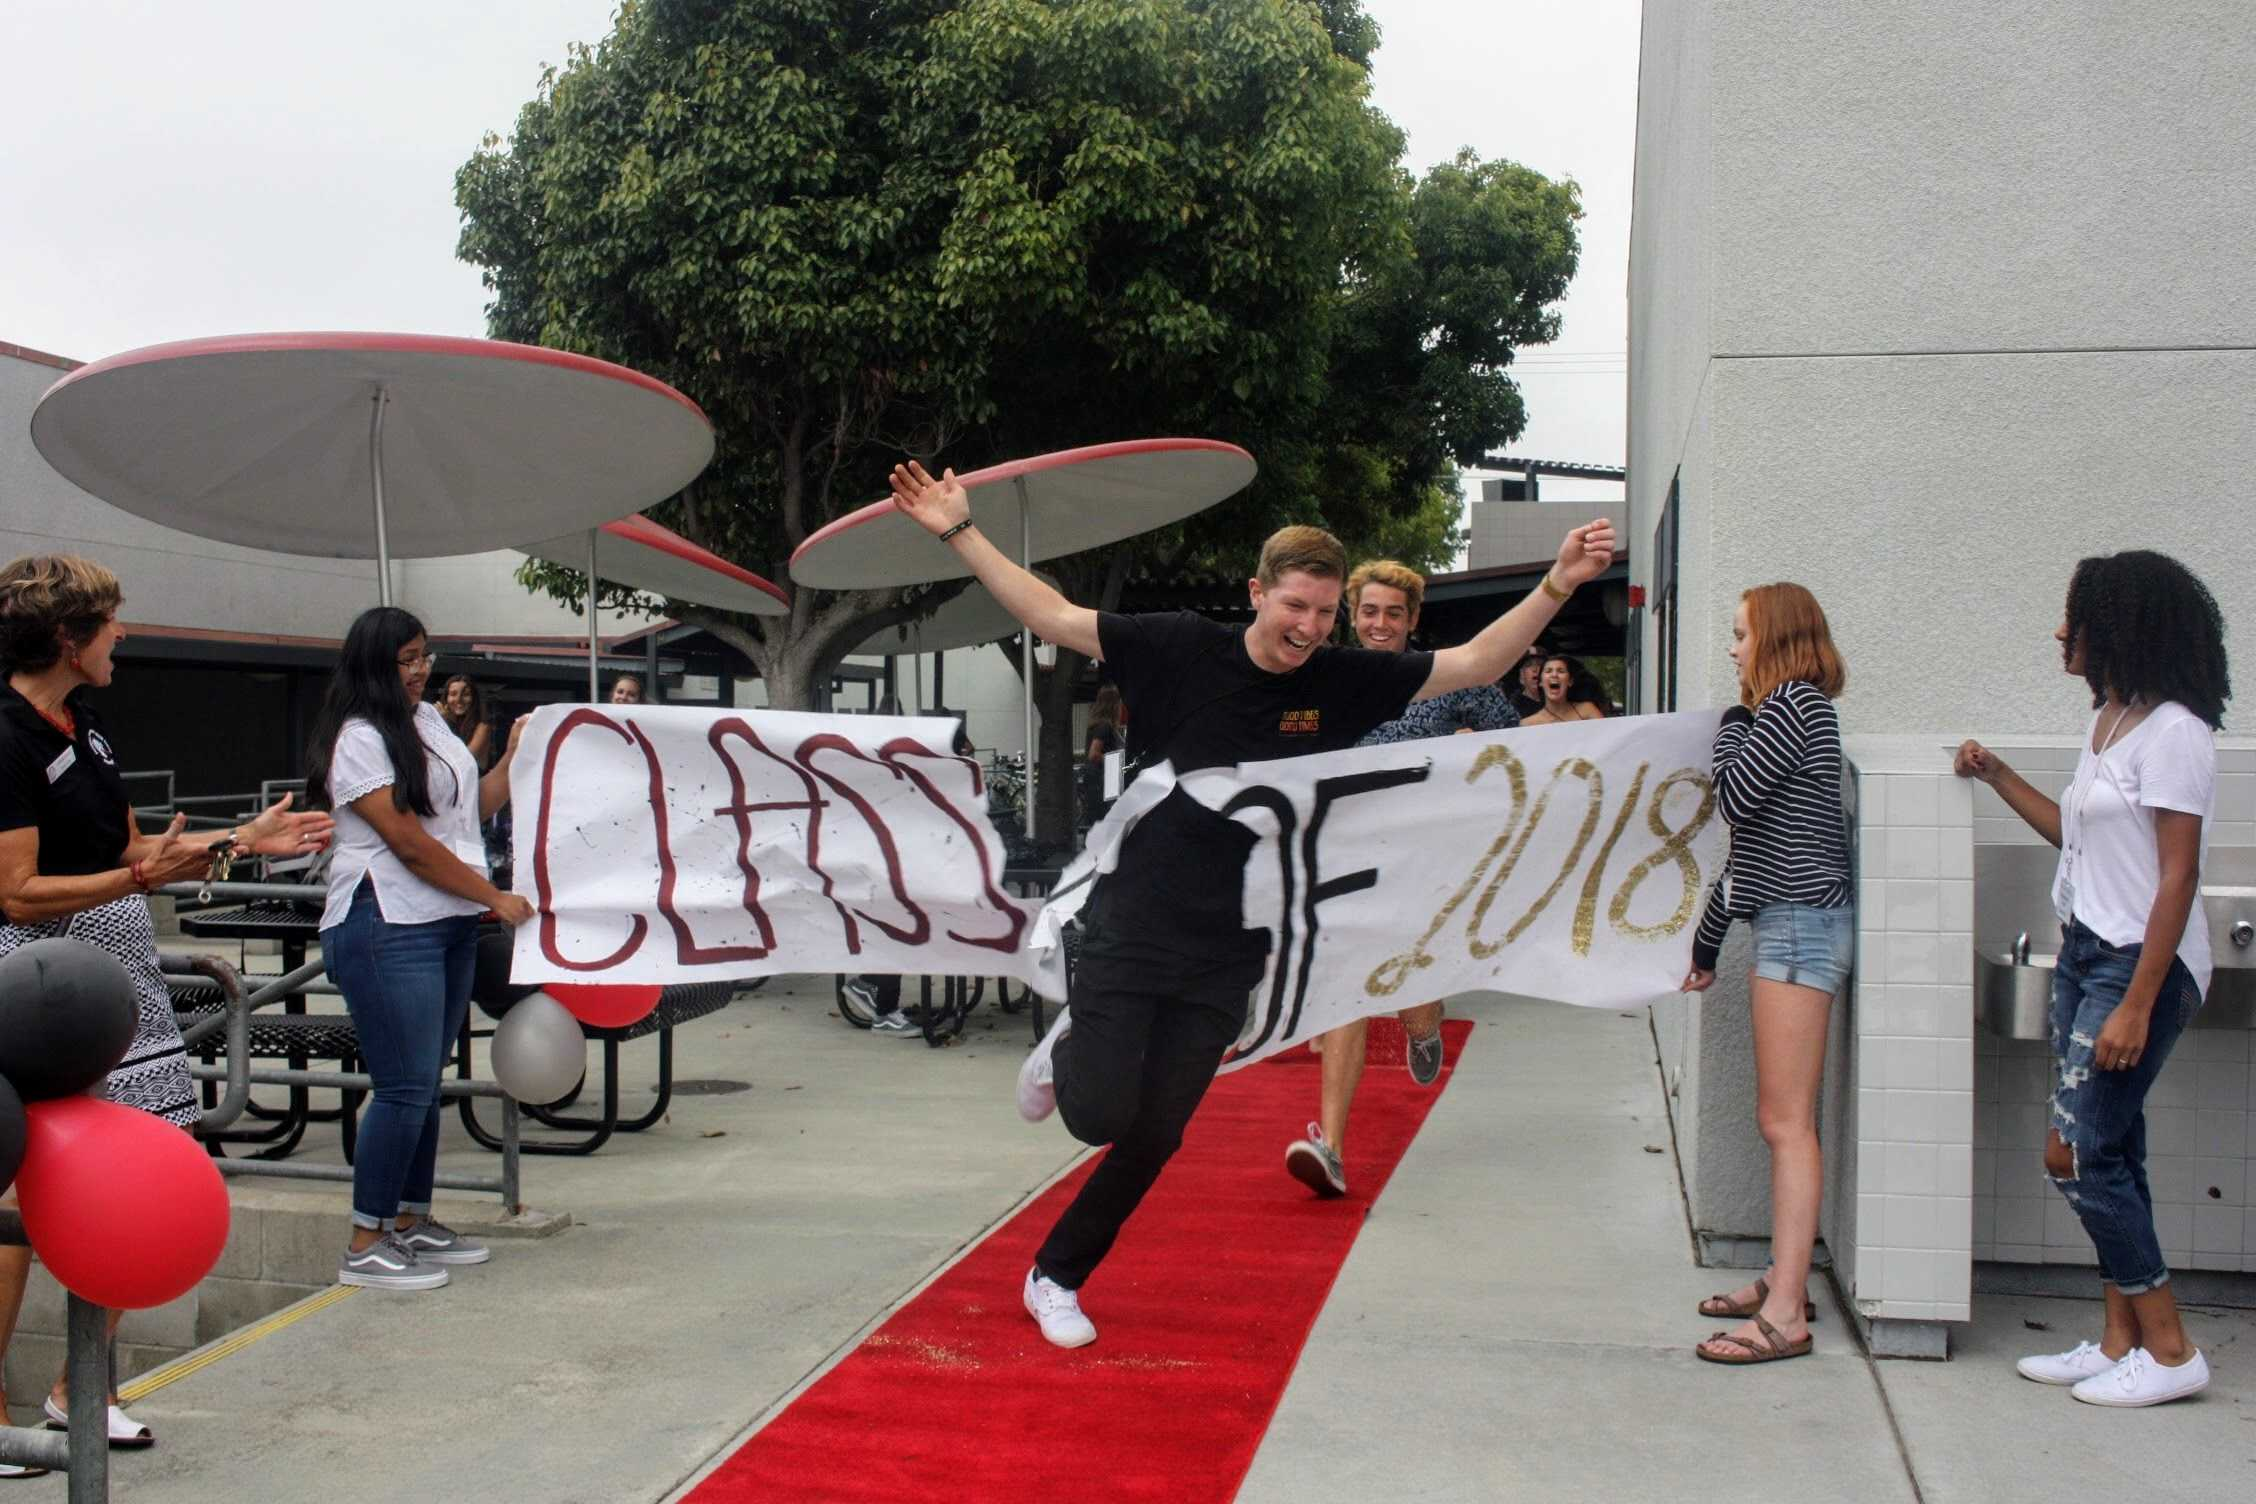 Cole Chilcutt '18 bursts through the banner on his way to the senior flash mob. Credit: Gabrialla Cockerell / The Foothill Dragon Press